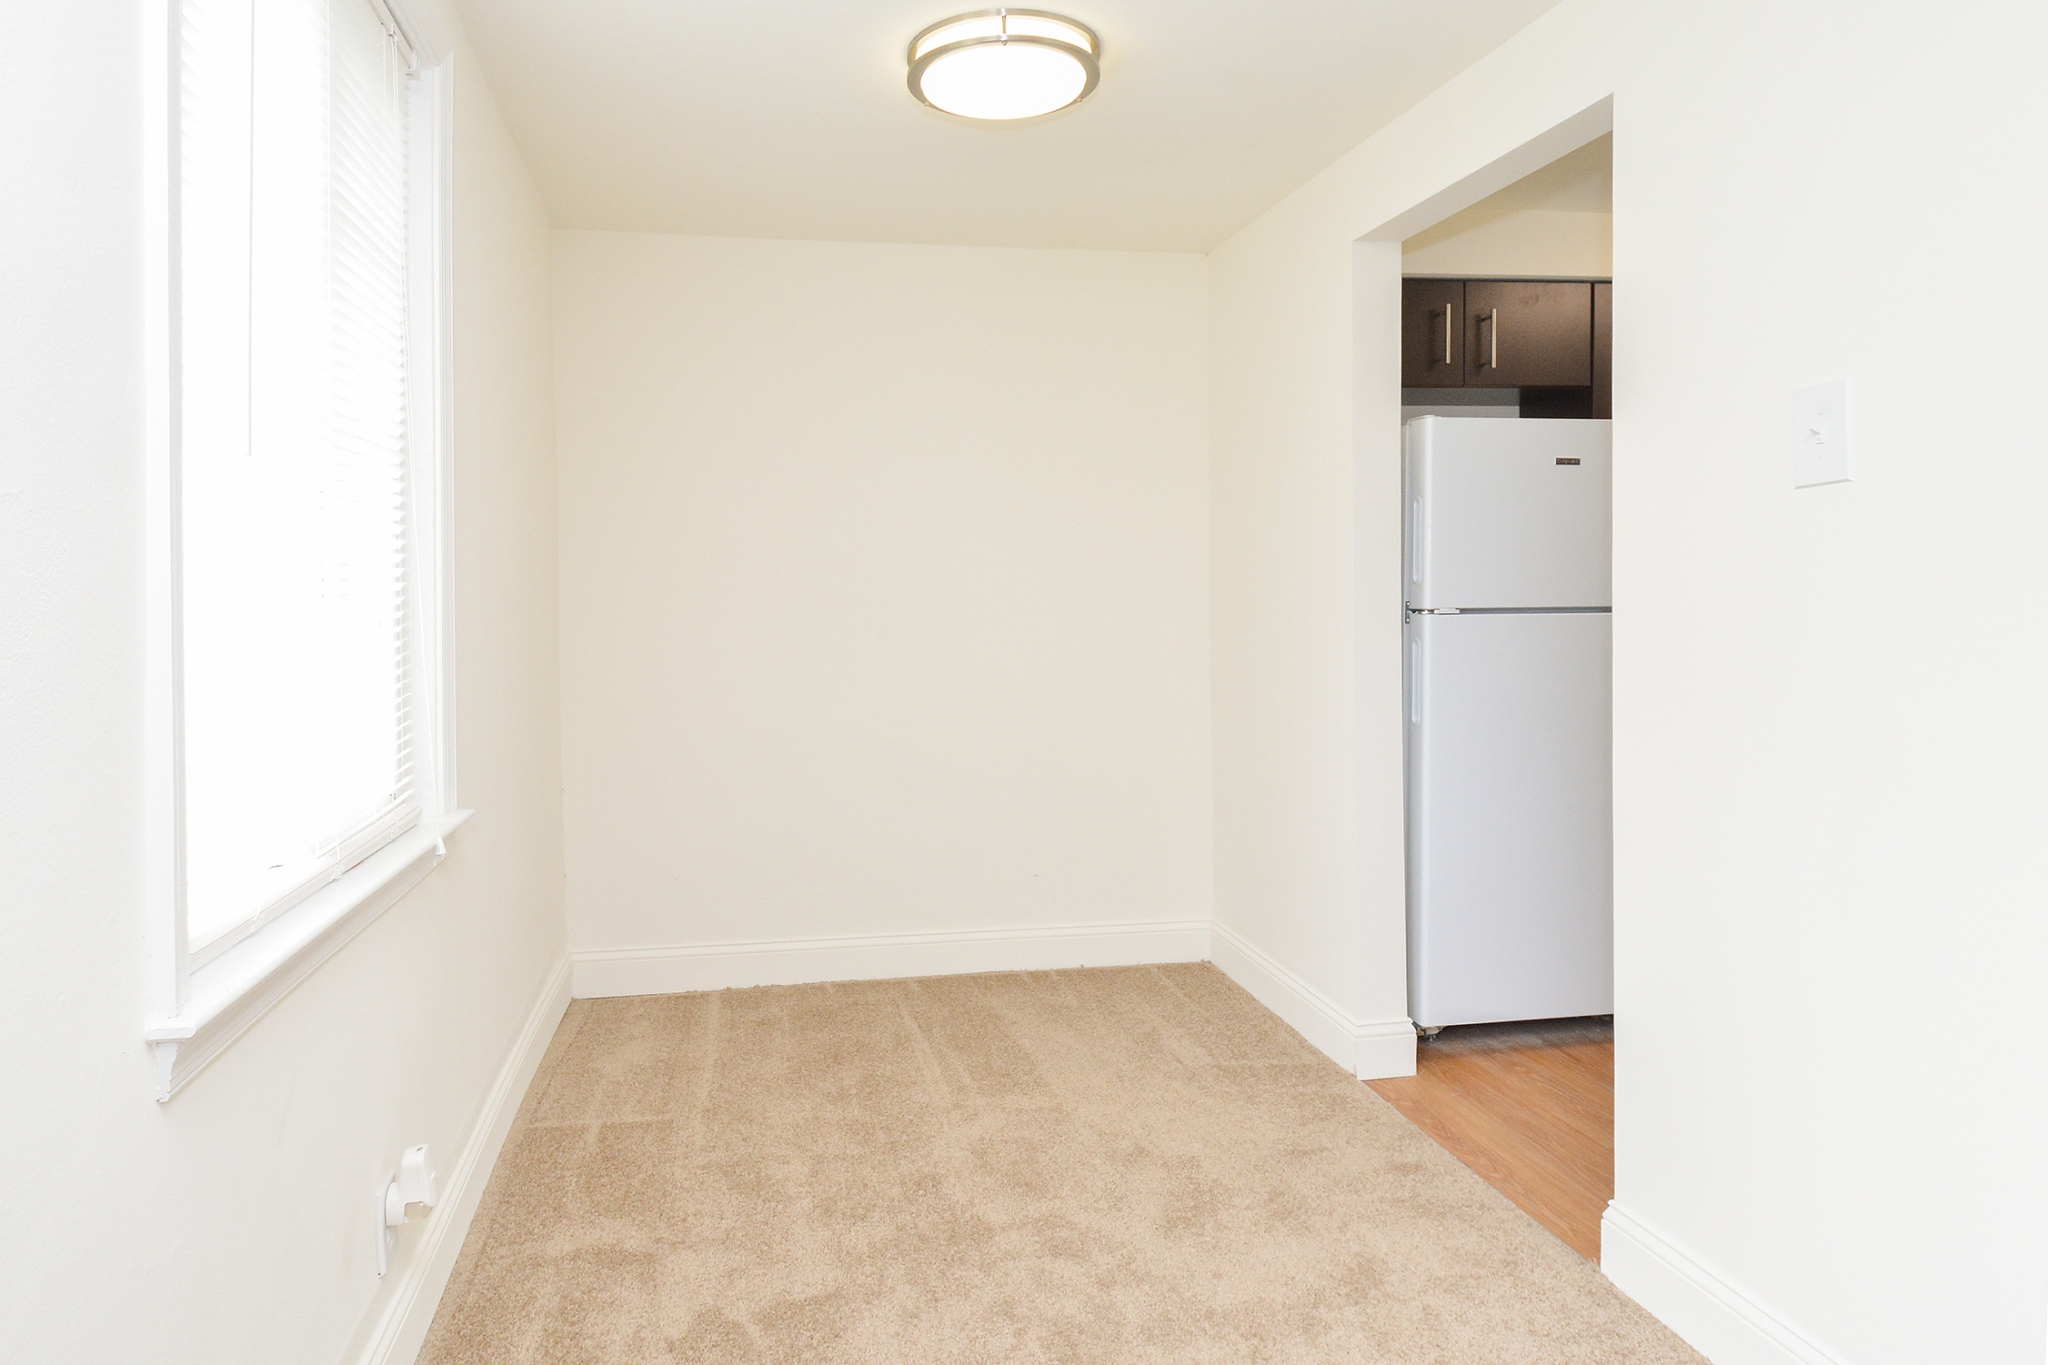 Spacious Dining Room | Apartment in Wilmington, DE | Greenville on 141 Apartments  Townhomes